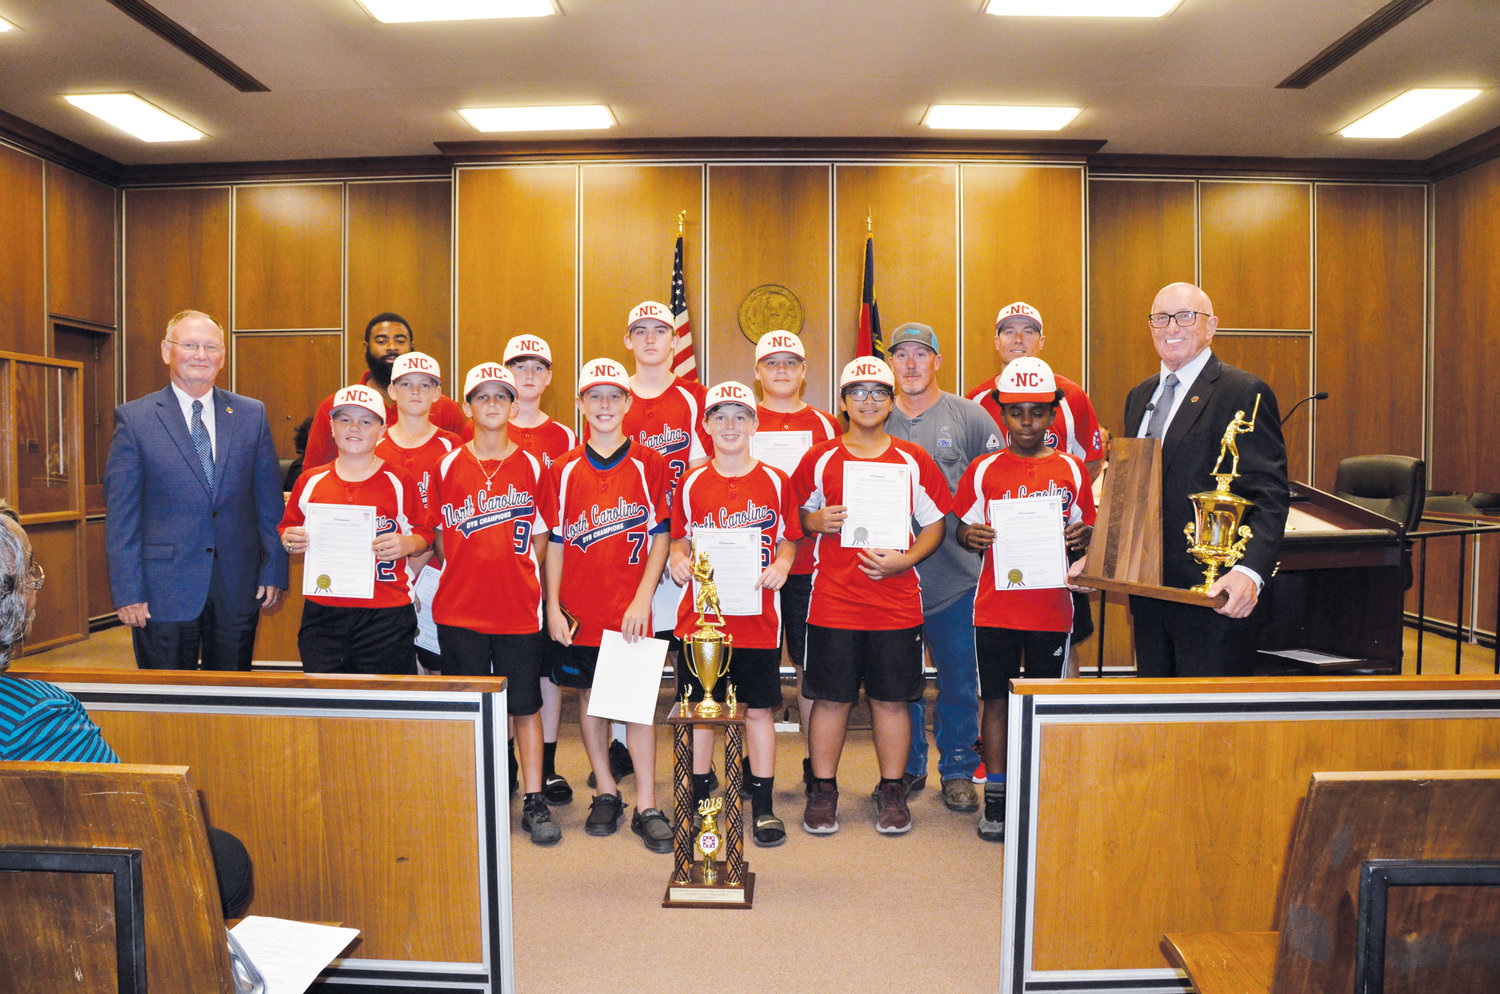 The Dunn City Council honored the Dunn Majors 12-Under All-Stars Tuesday night. The team won the state championship and went on to finish third in the Dixie Youth World Series. Front row from left are council member Chuck Turnage, Jarrett Cooper, Hunter Tyndall, Braxton Davis, Wyatt Lucas, Gabe Dapuyen, Jalen Evans and Dunn Mayor Oscar Harris. Second row from left are Dunn Recreation Director Brian McNeill, Tripp Westbrook, John Nelson McLamb, Anthony Jones, Ross Stevens, assistant coach Kevin Davis and head coach Charlie Stevens.